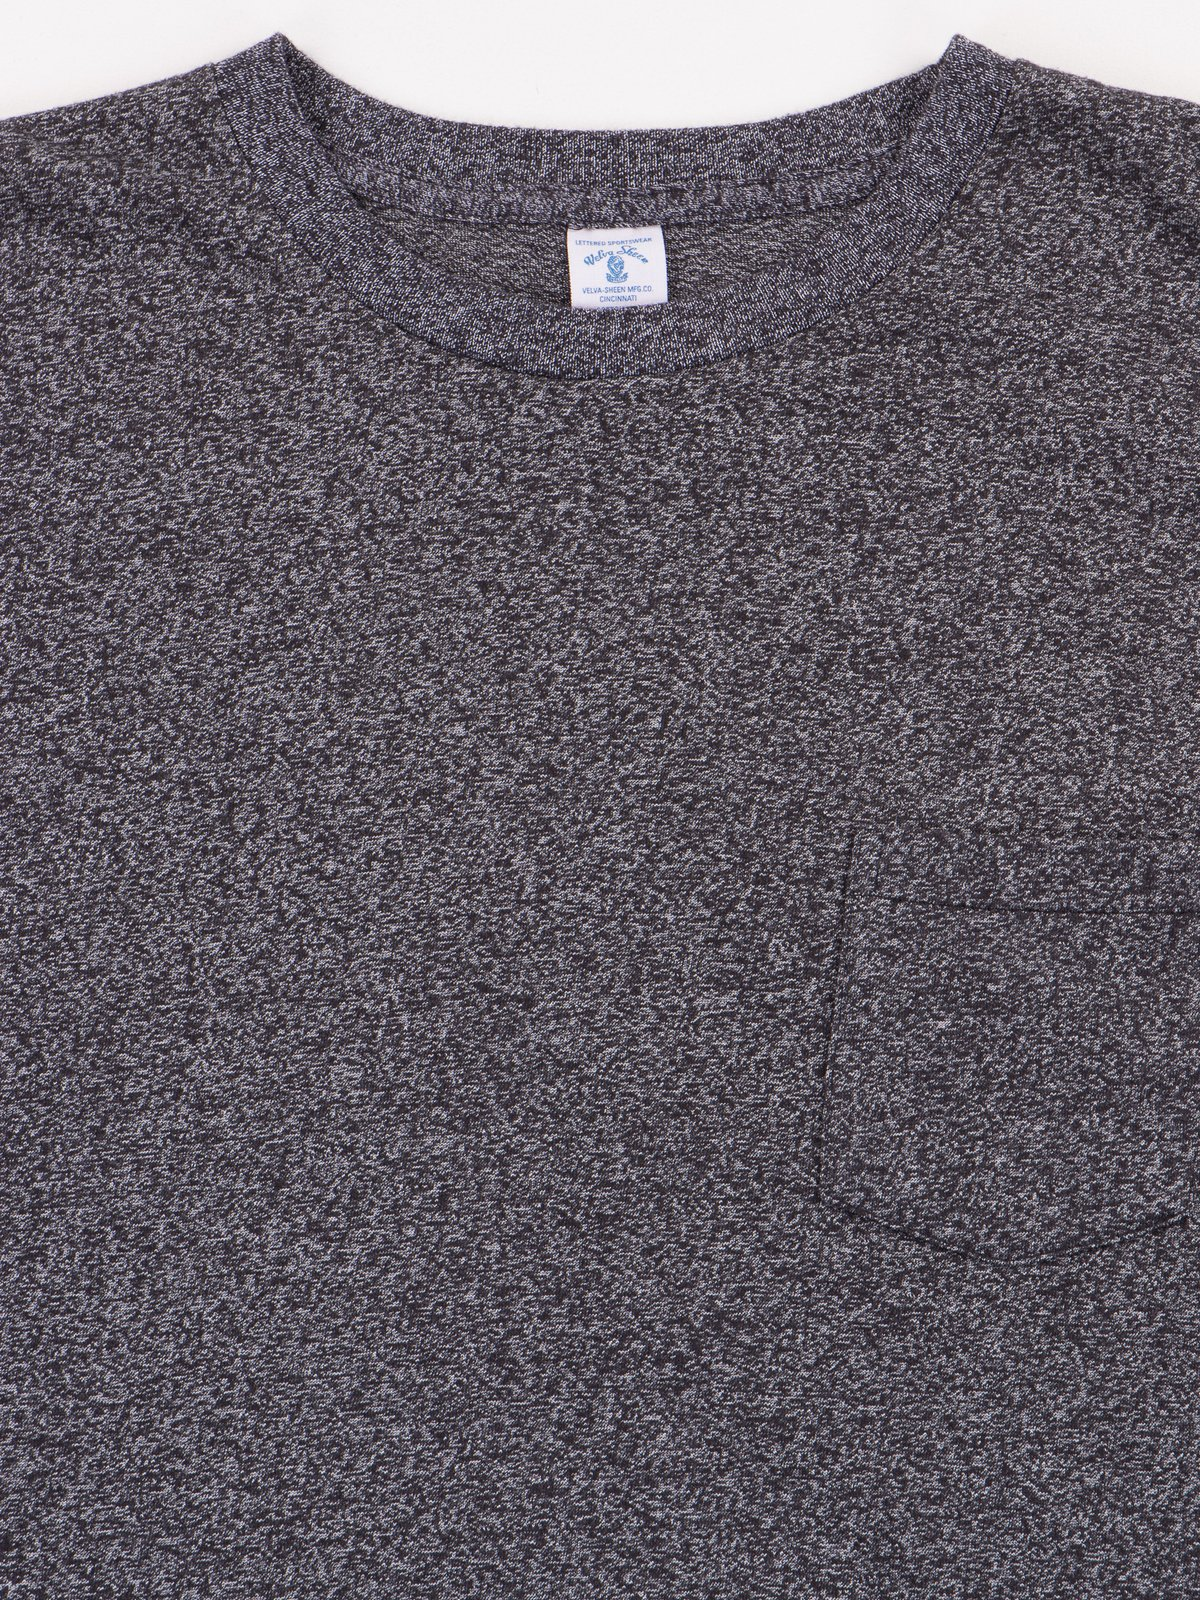 Heather Black 1–Pac Pocket Tee - Image 3